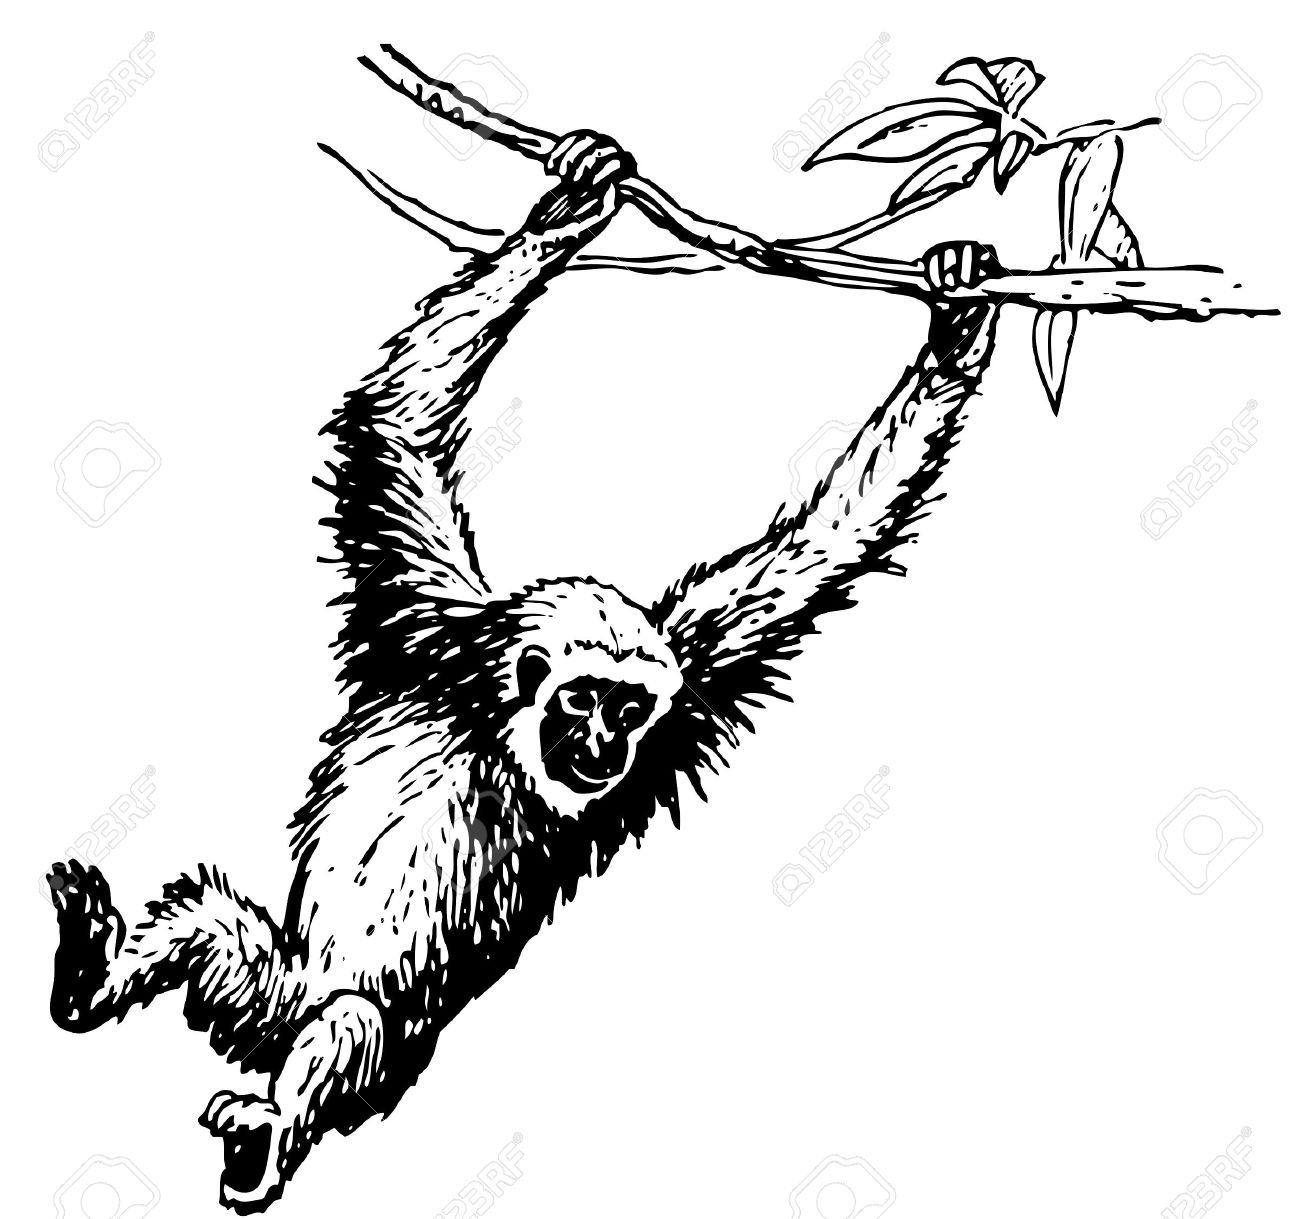 Gibbon clipart #3, Download drawings